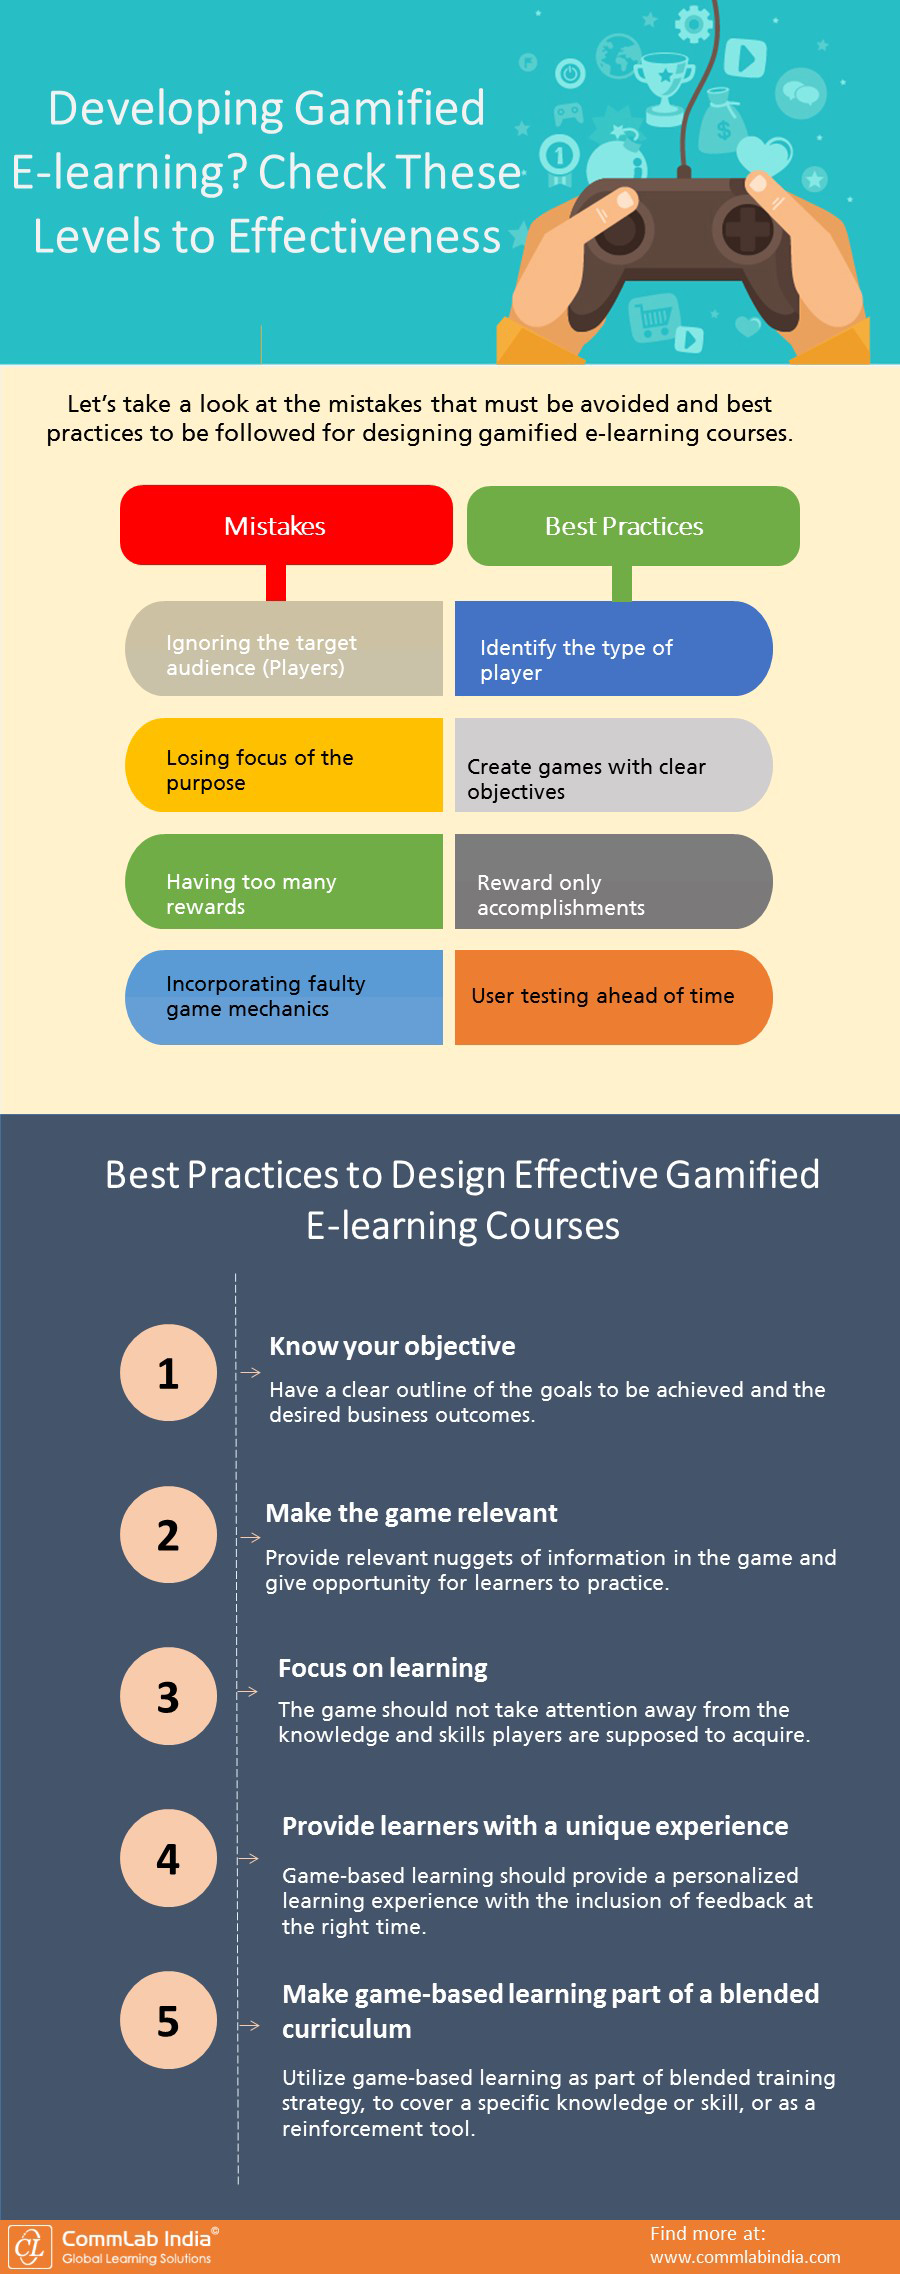 Developing Gamified E-learning? Check These Levels to Effectiveness